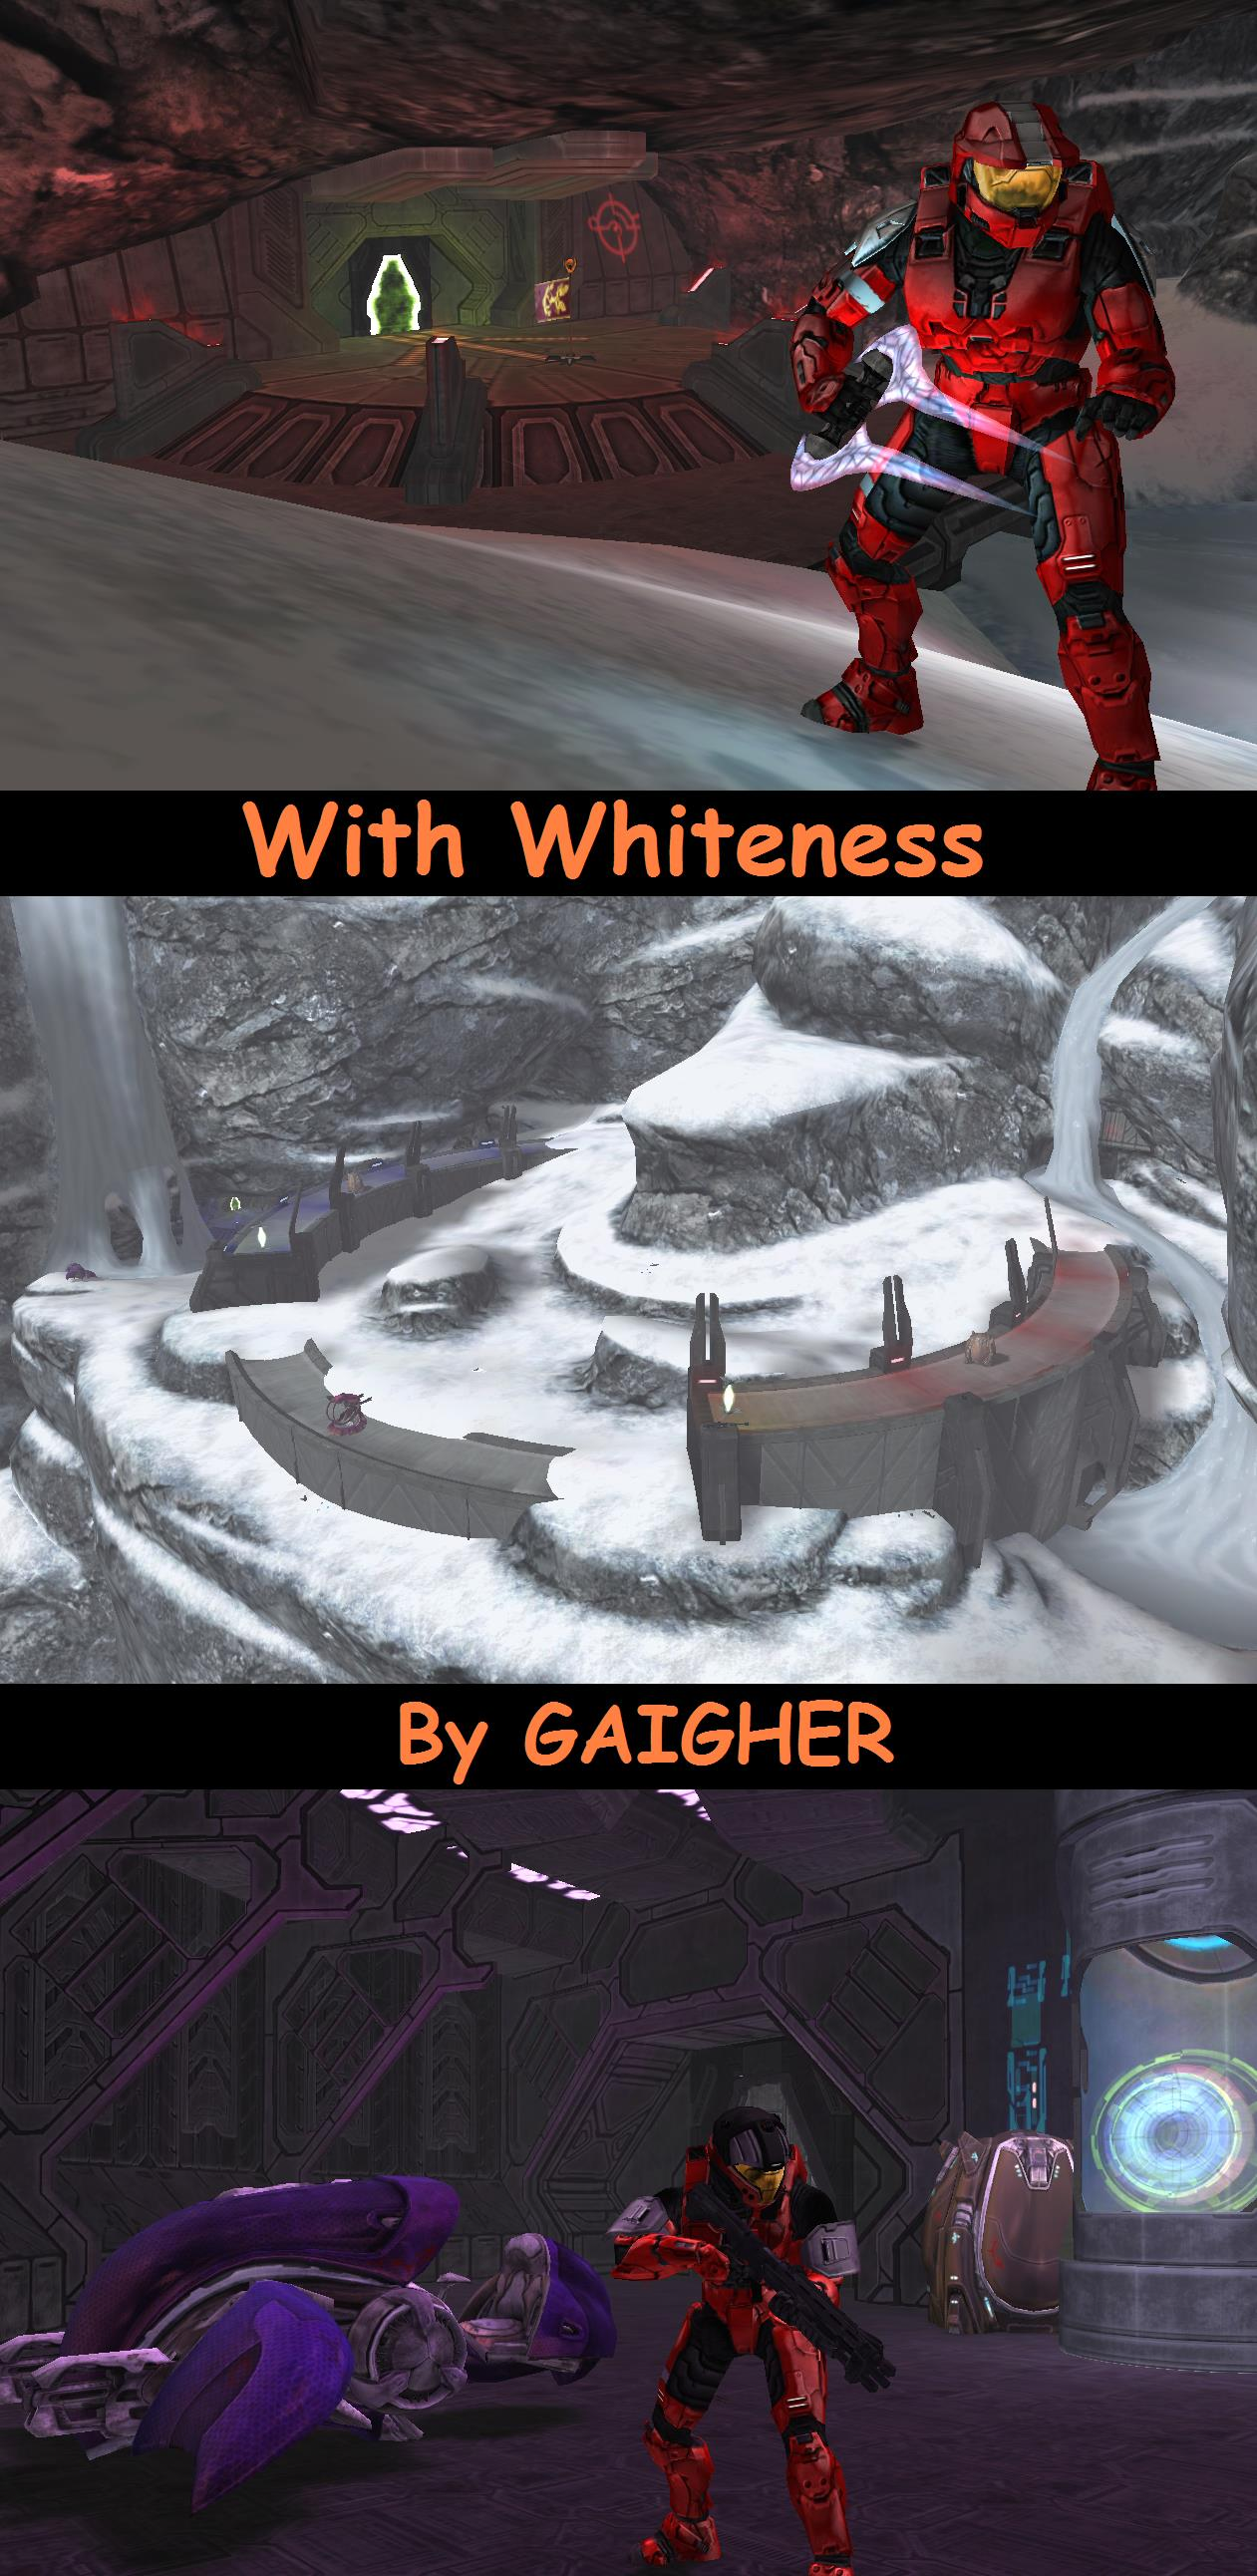 With_Whiteness With Whiteness maphaloce map halo ce<br />maphalo halomap carte cartes cr&eacute;ation GAIGHER mod